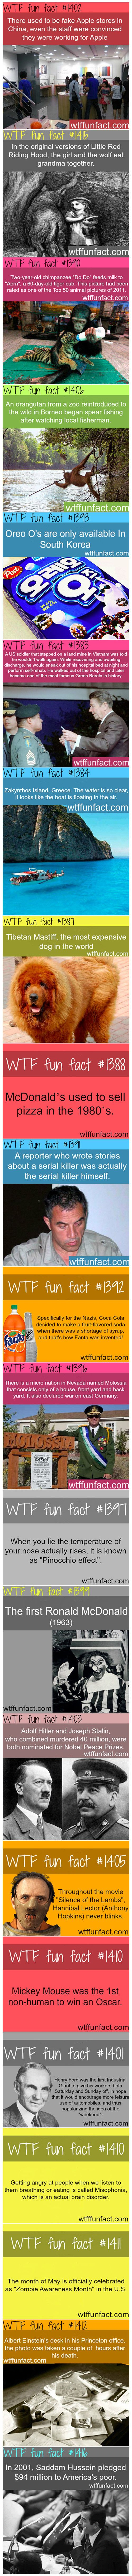 some fun and random facts that you probably did not know were true.